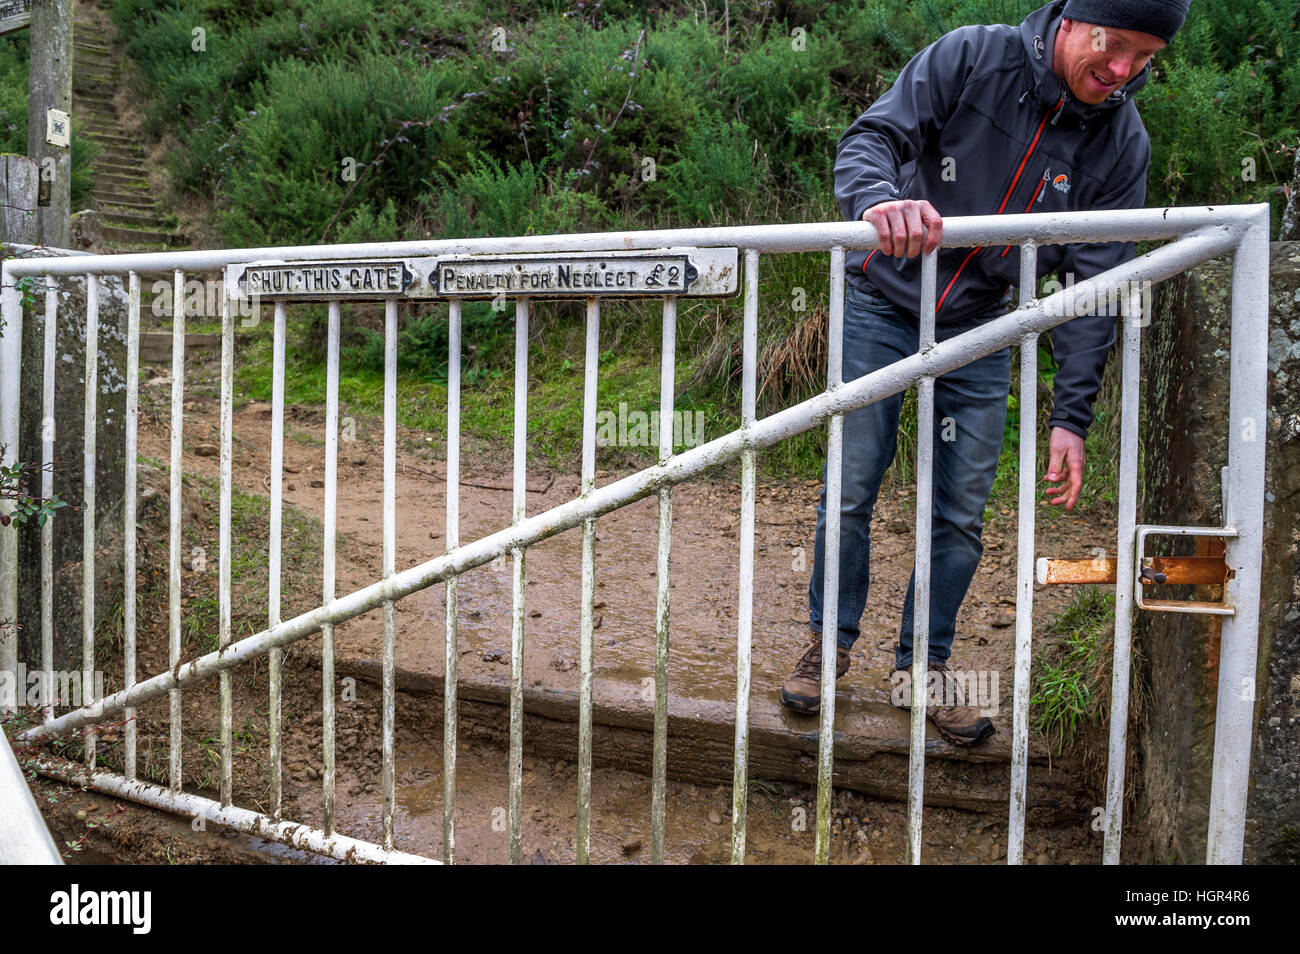 Man opening a white metal gate with sign 'shut this gate' , 'penalty for neglect £2' - Stock Image